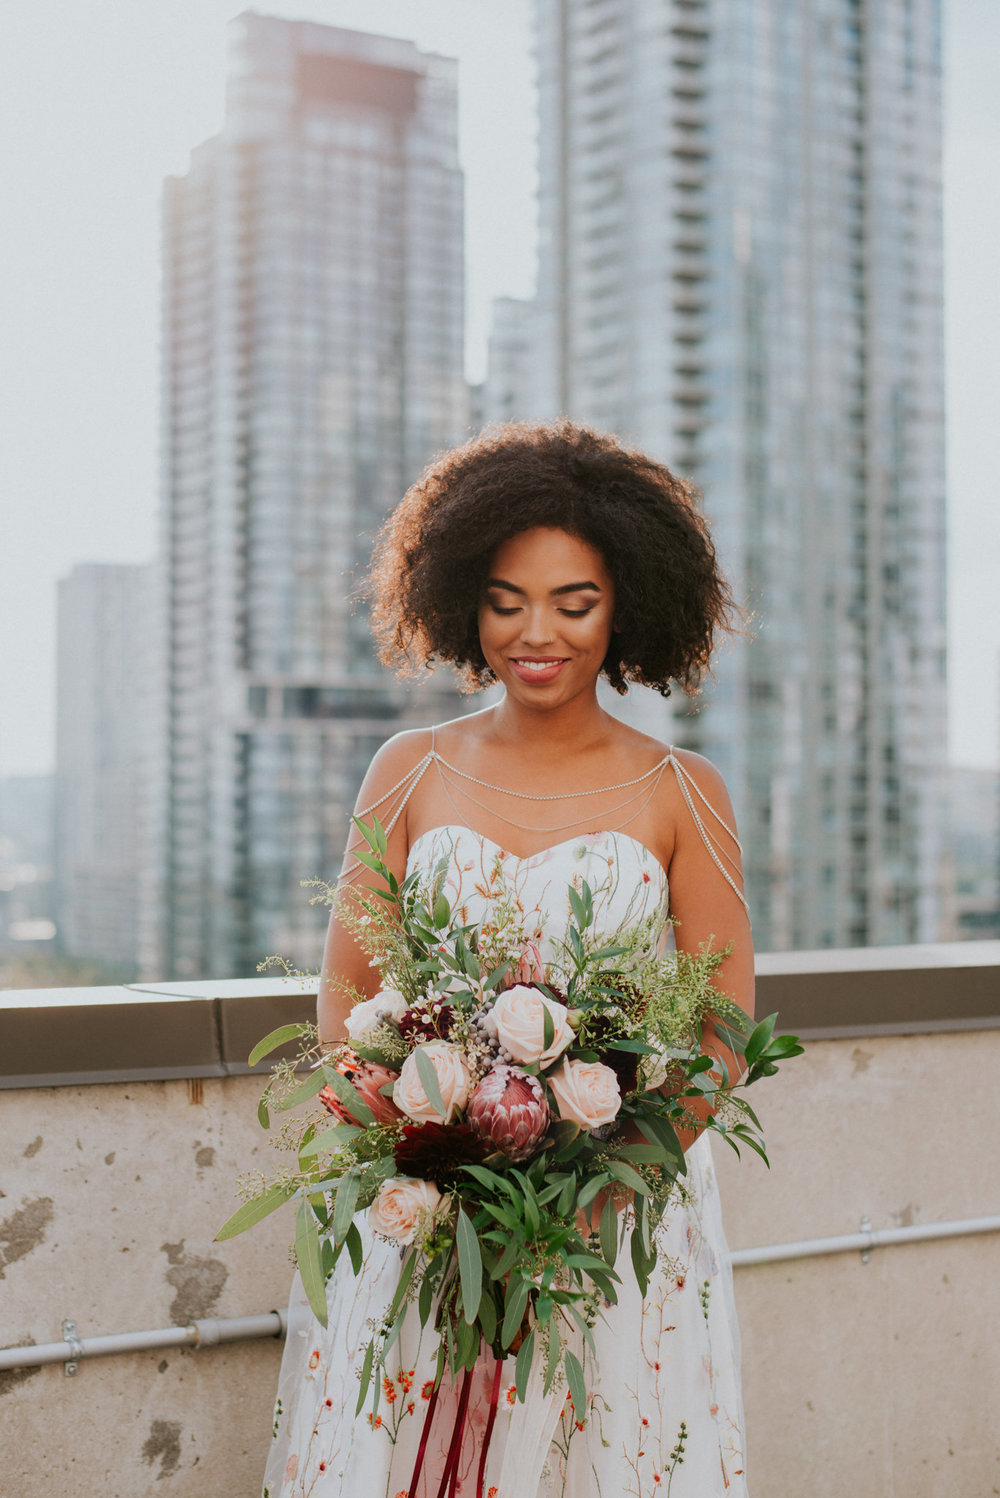 Wild Bouquet Photographer: Scandaleuse Weddings